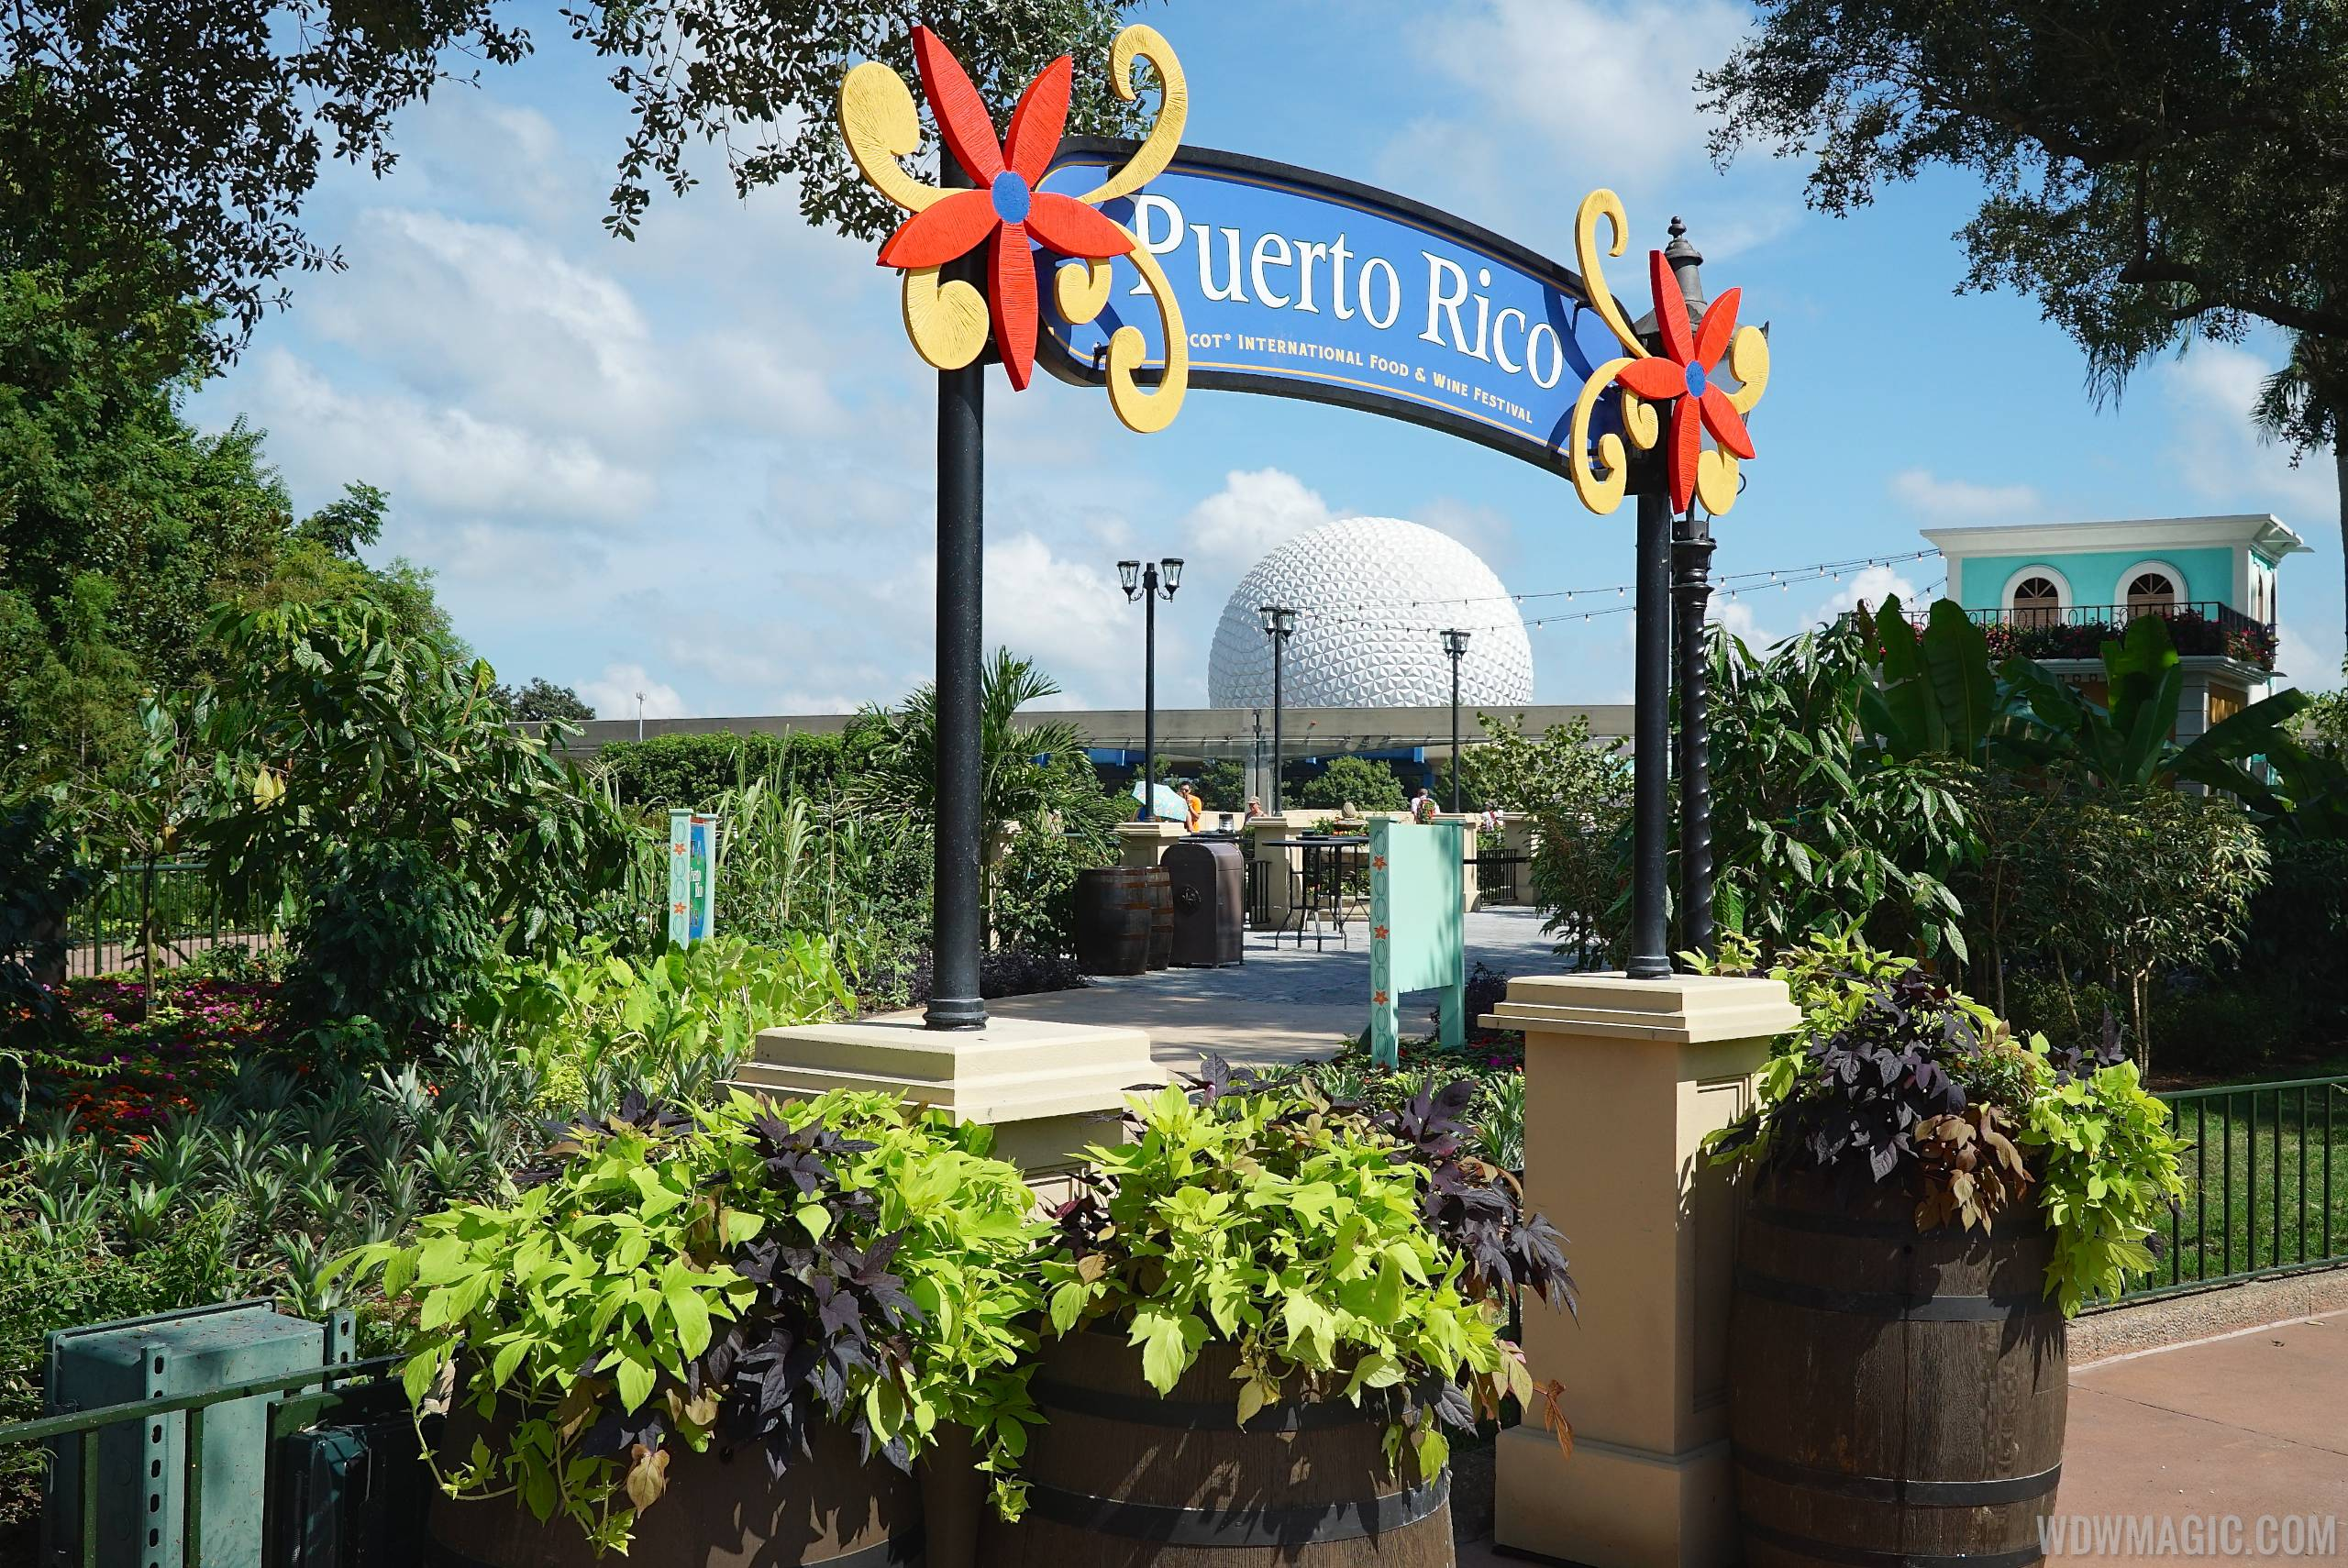 The Puerto Rico marketplace kiosk at the Food and Wine Festival